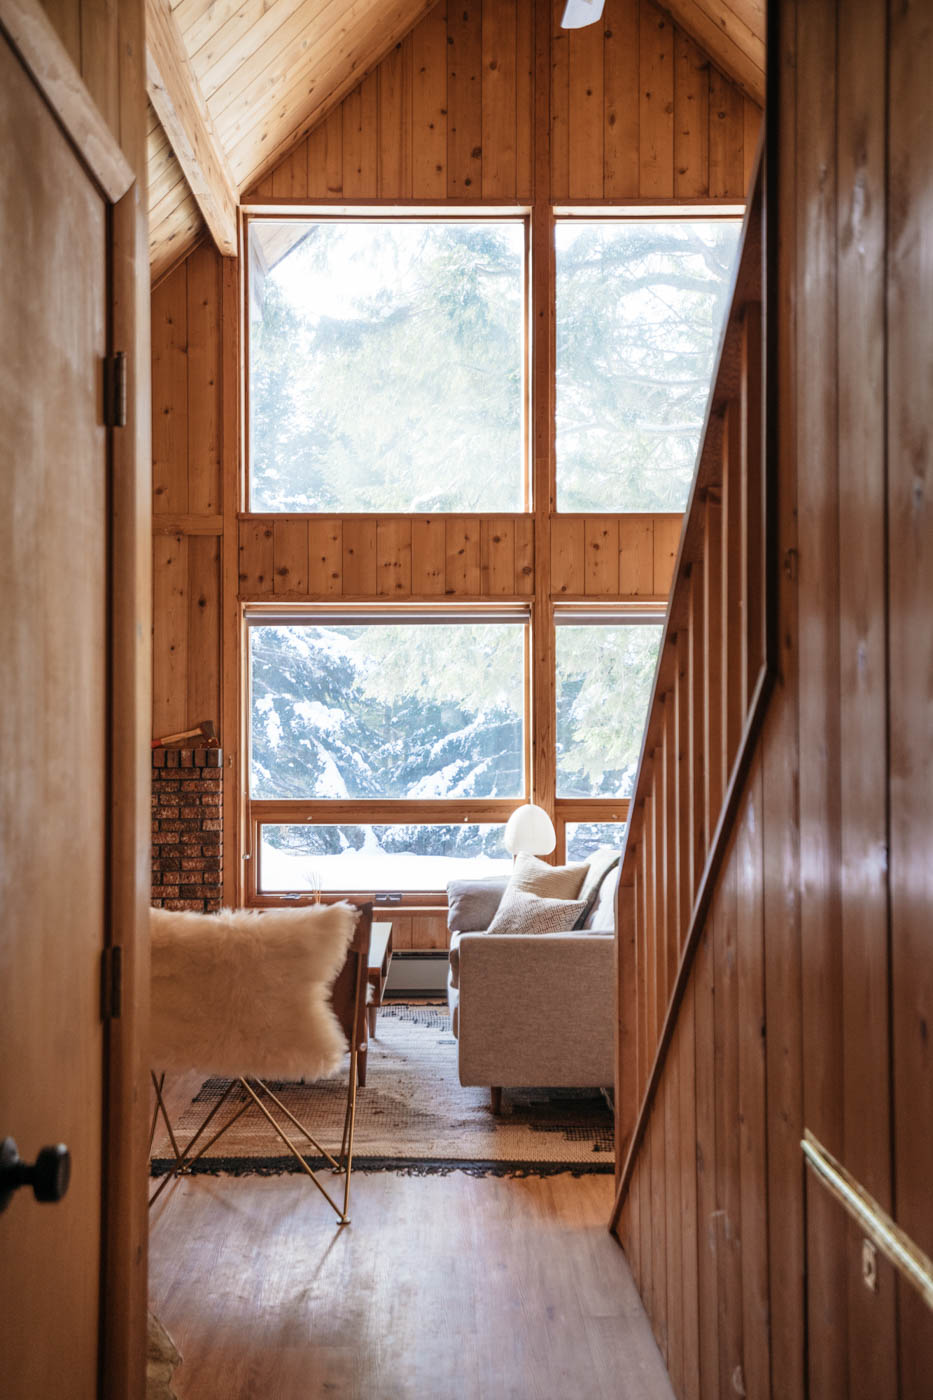 CabinGoals-WardsboroVT-natural-light-photography-studio-lifestyle-photoshoot-location-editorial-commercial-photography-10.jpg